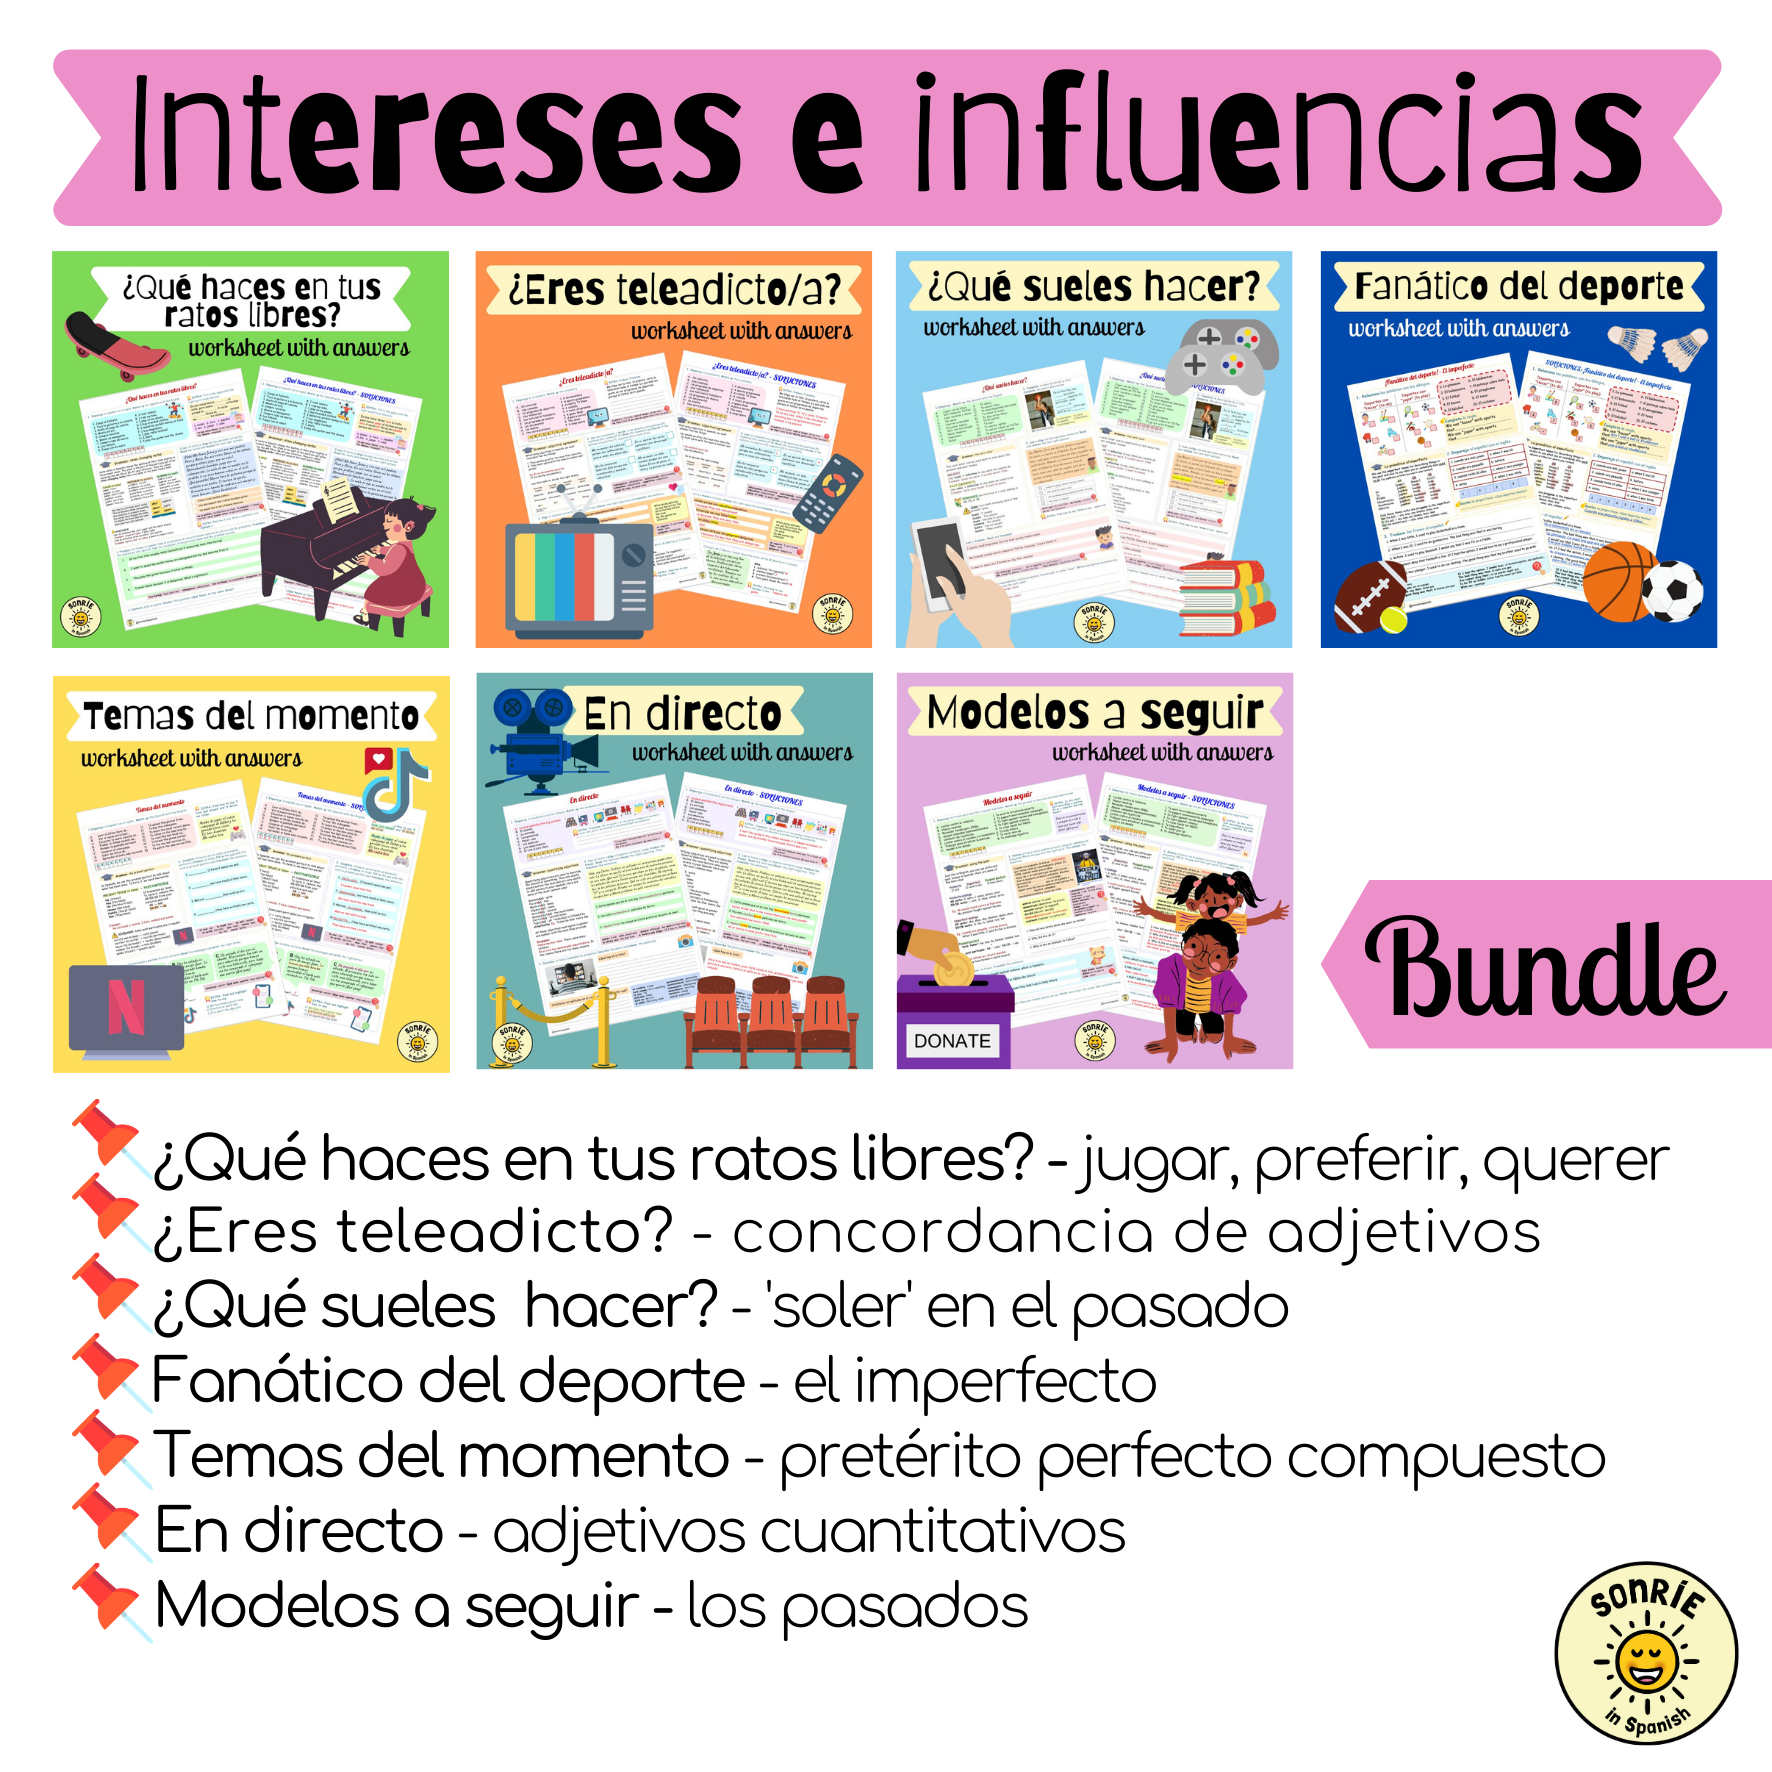 Intereses e influencias. Pack de fichas con soluciones sobre el tiempo libre/modelos a seguir. Spanish GCSE bundle on free time/role models. Worksheets with answers